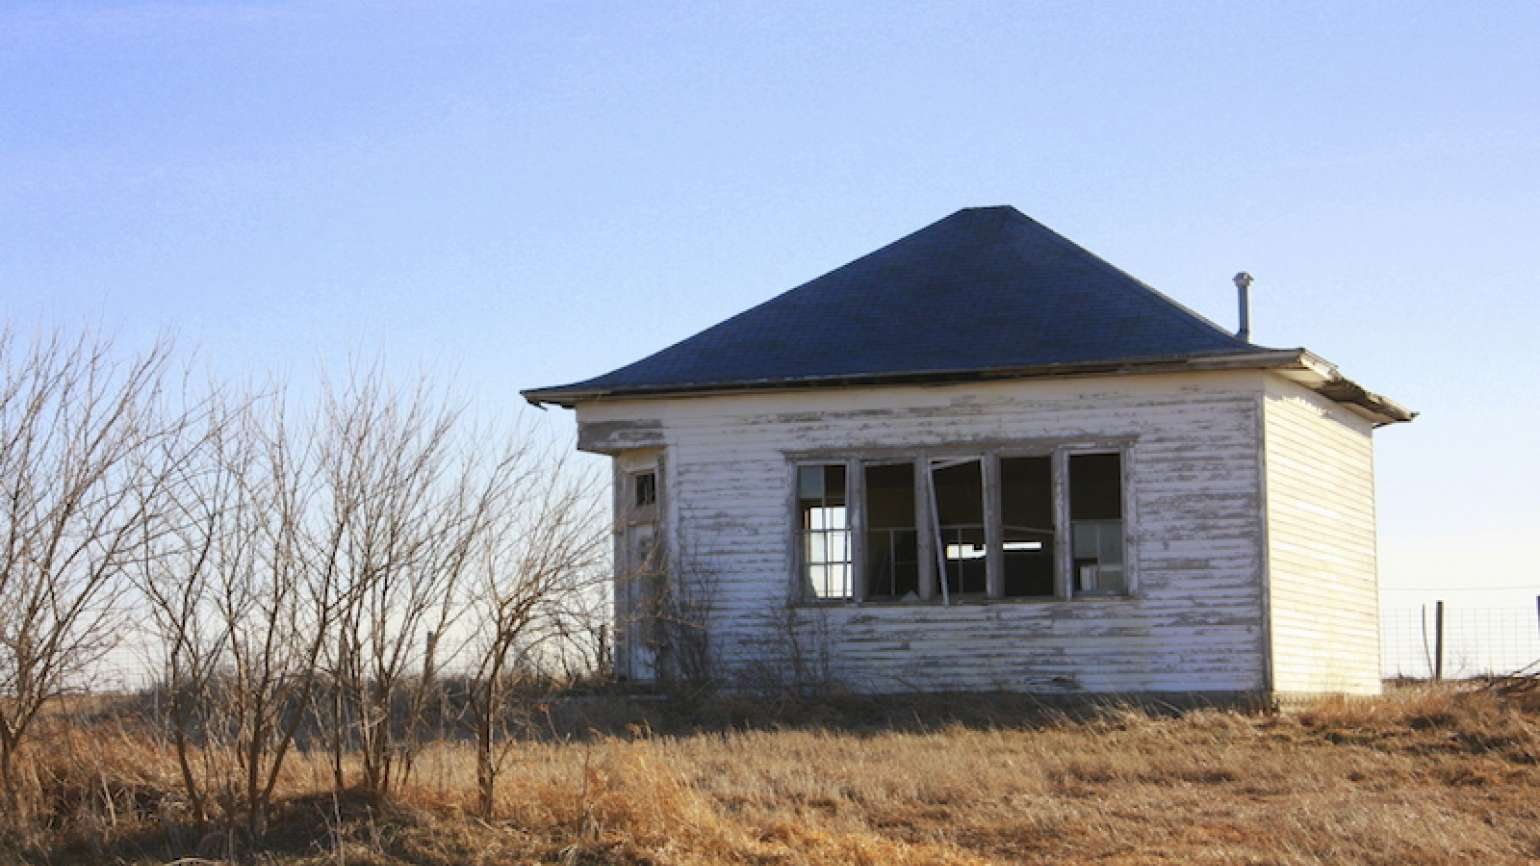 A home that needs fixing. Photo by Darcy Maulsby, Thinkstock.